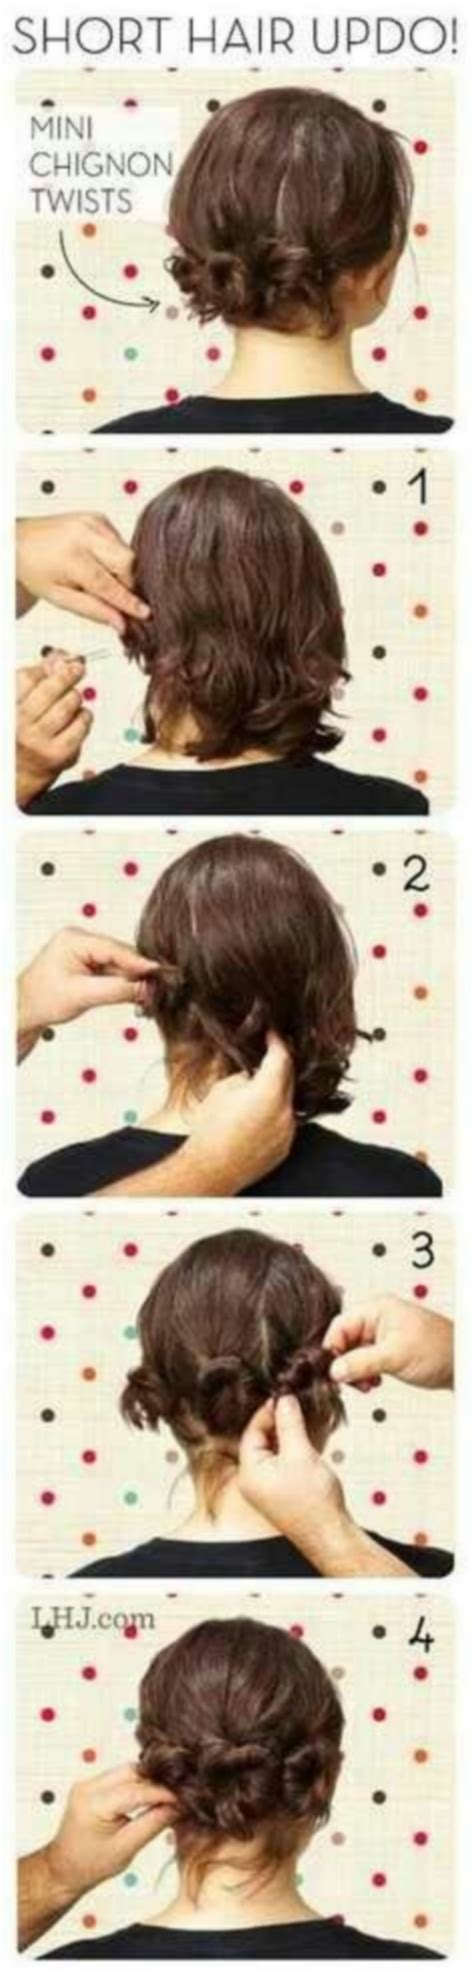 hairstyles for curly medium hair step by step best updos for short curly hair with picture step by step